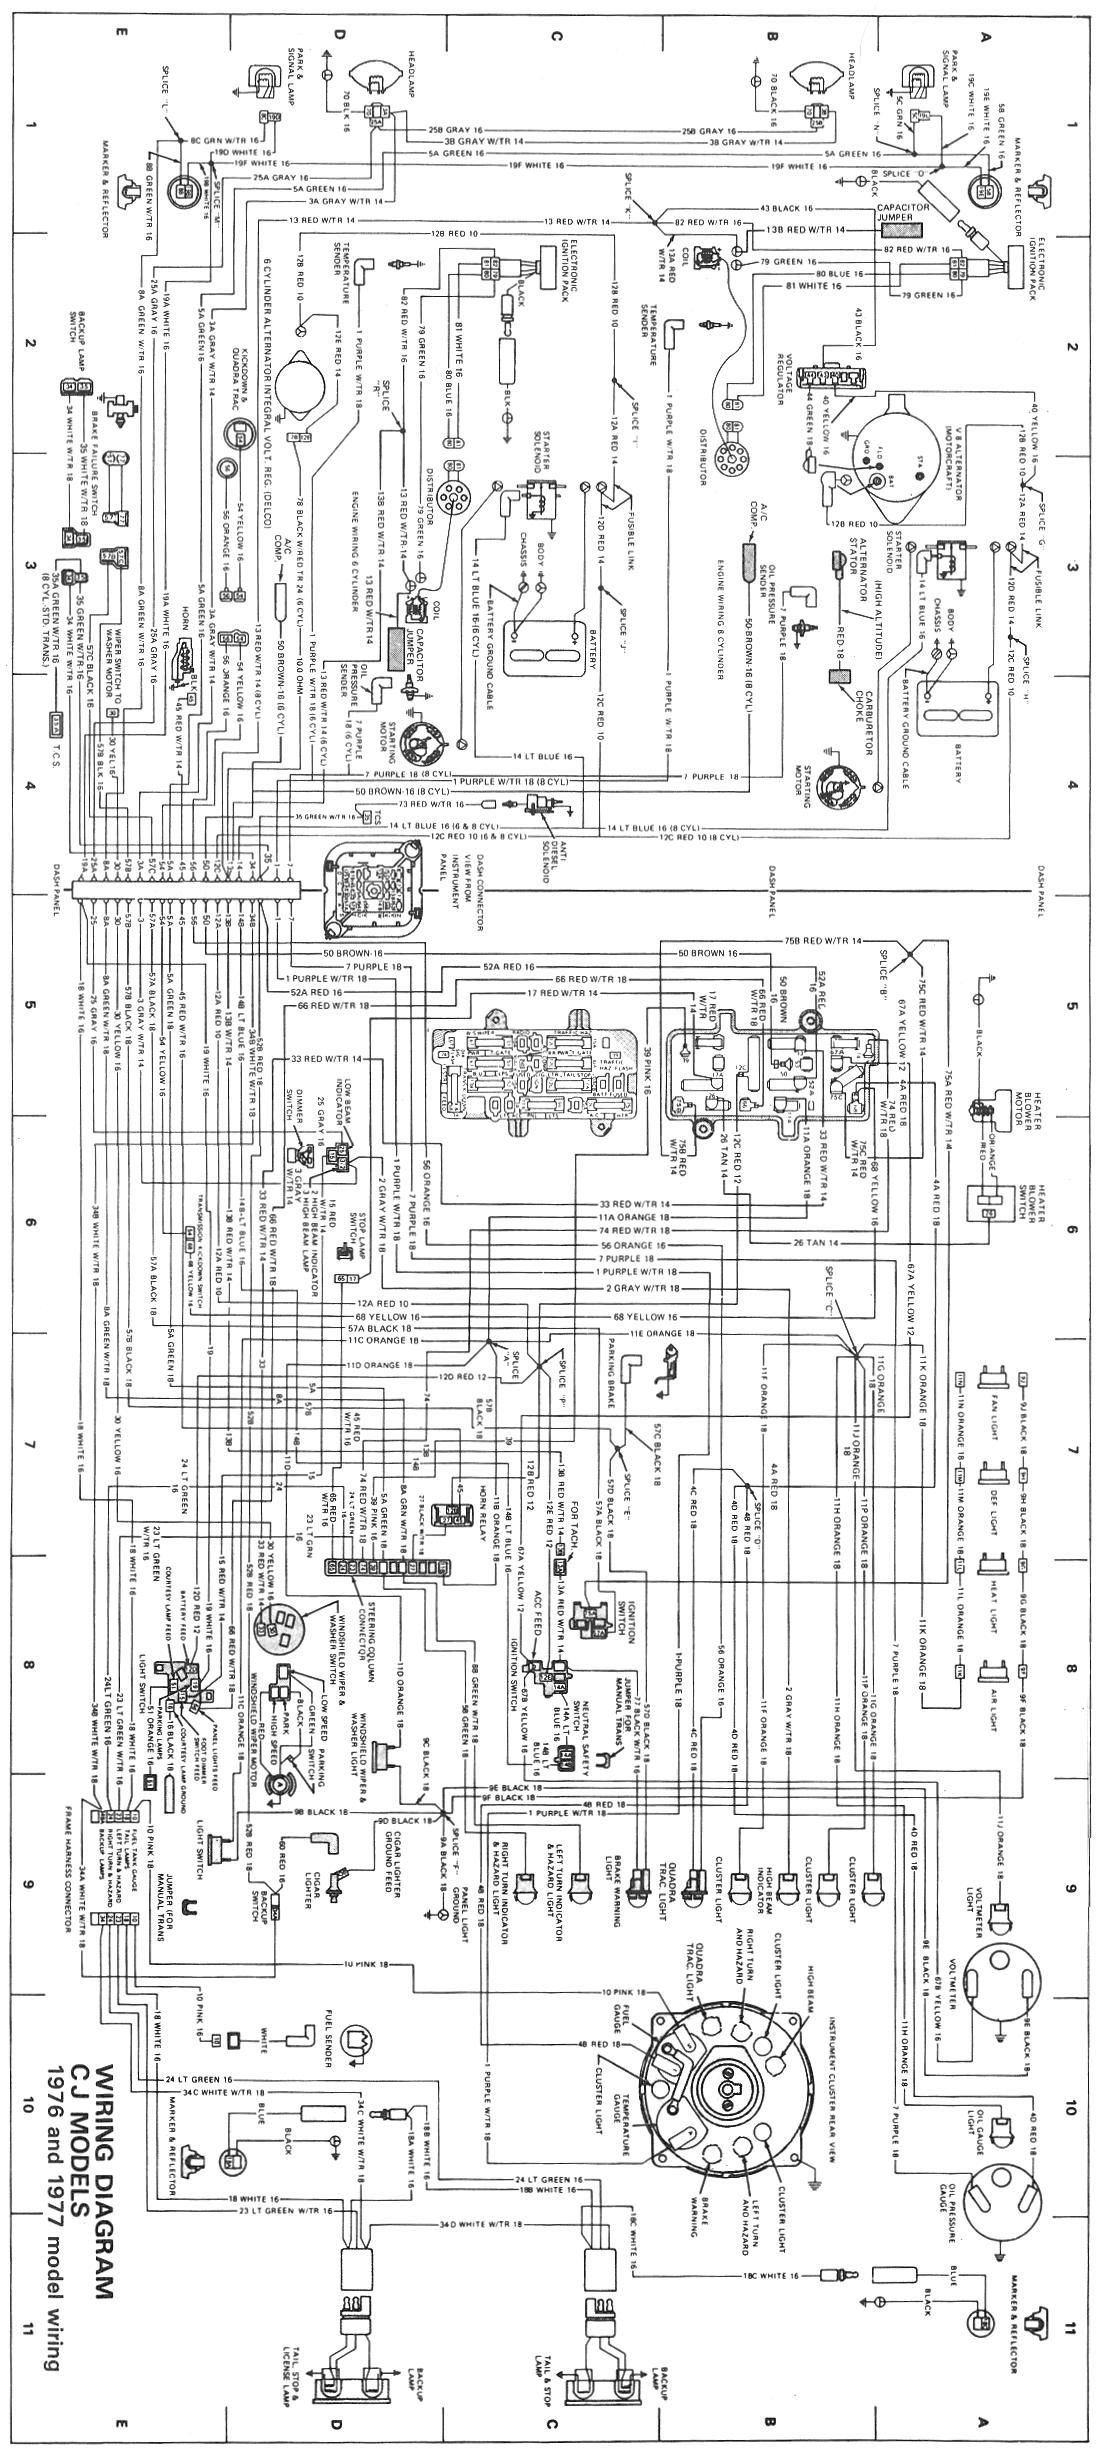 1950 Willys Jeepster Wiring Diagram Starting Know About Wiring Jeep  Wagoneer Wiring Diagram 1950 Jeep Cj Wiring Diagram